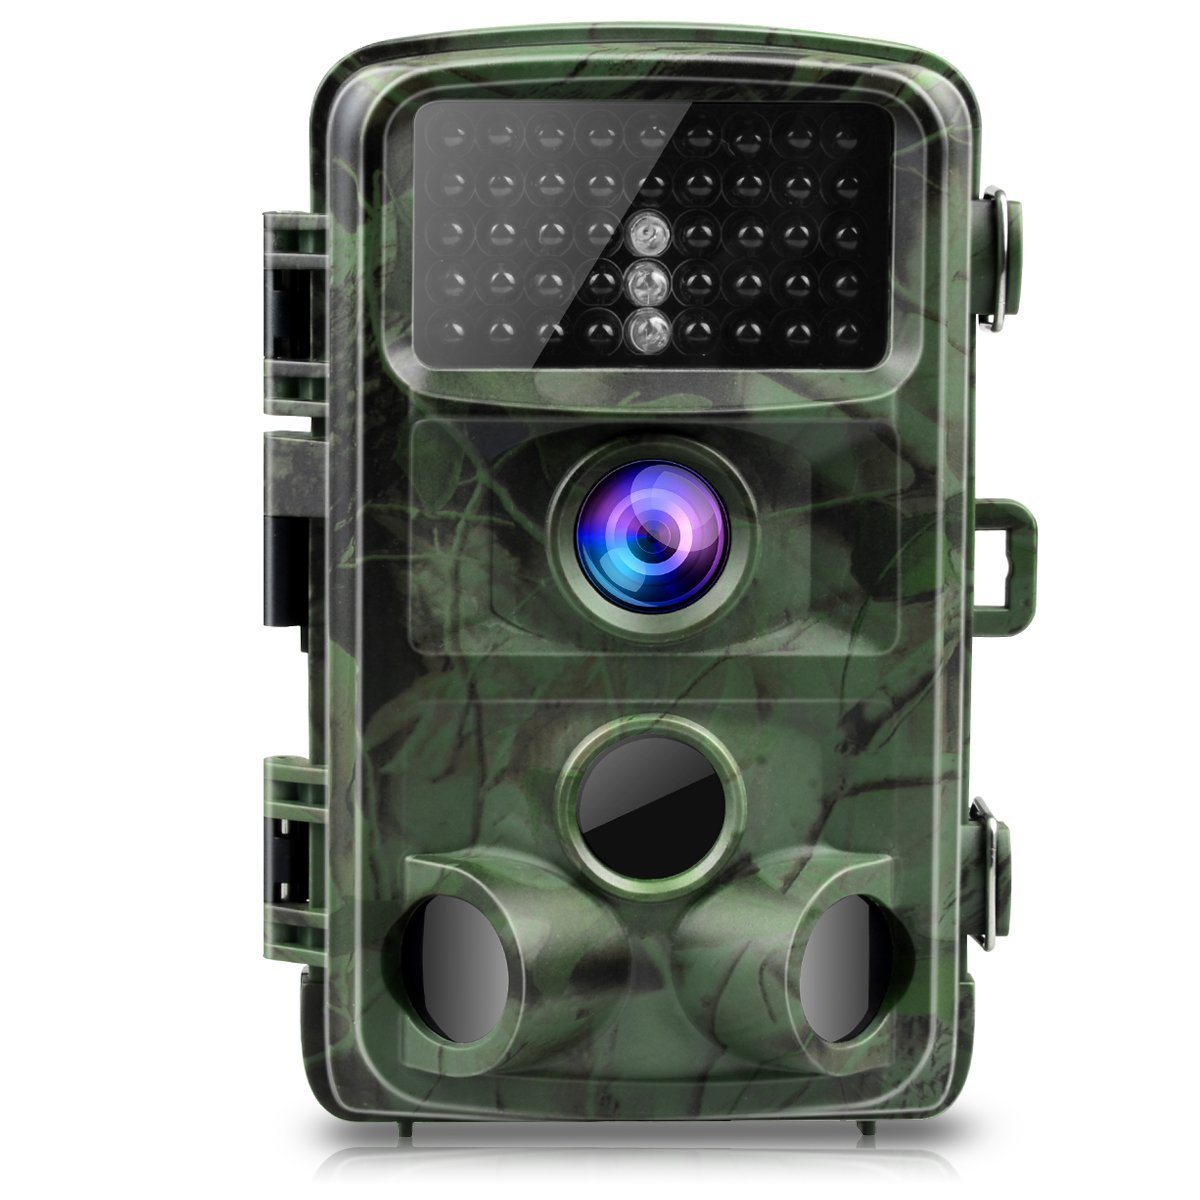 Toguard Trail Camera, trail camera